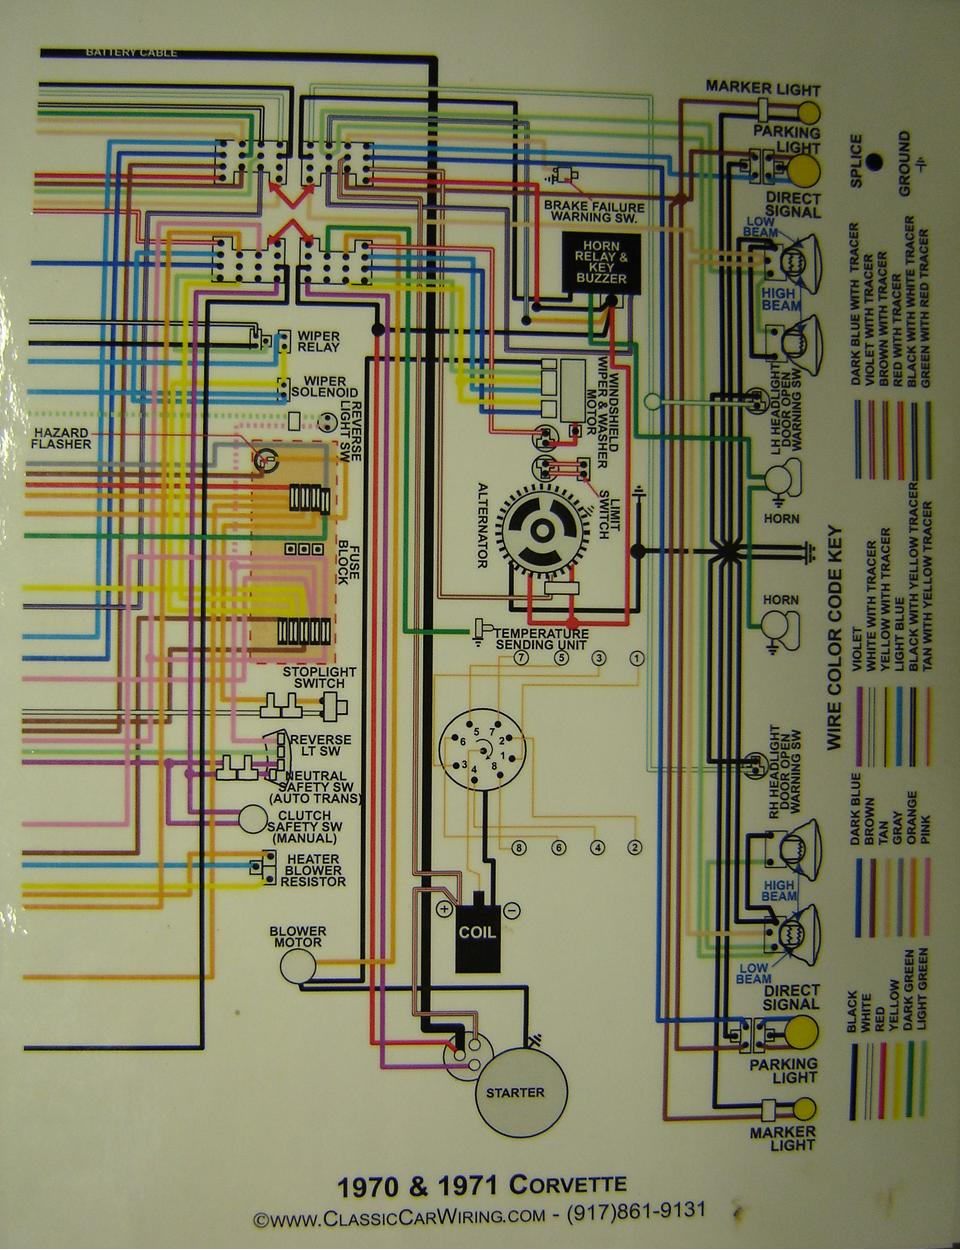 1971 Chevy Wiring Diagrams Diagram Online 1970 Monte Carlo K5 Blazer 71 Corvette Color 2 Drawing